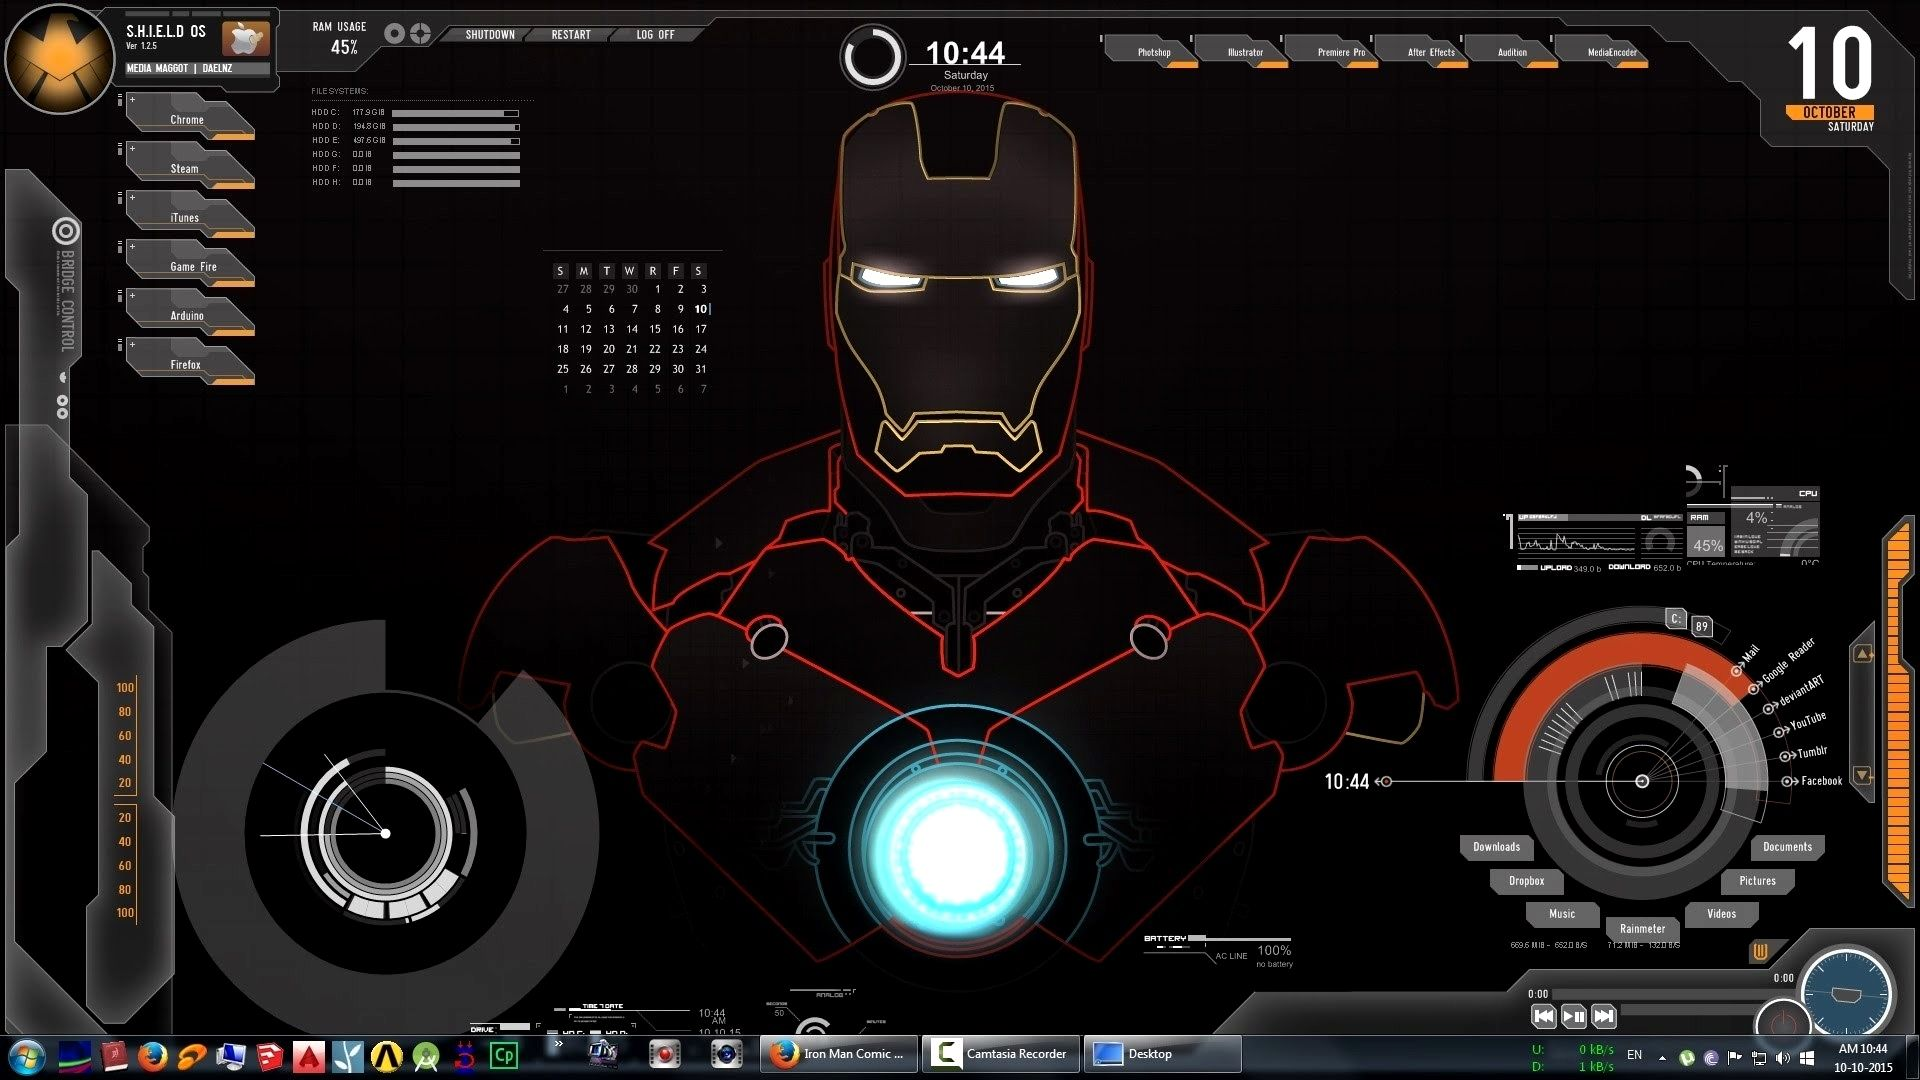 4k Wallpaper For Pc Of Iron Man Gallery Live Wallpaper For Pc Iron Man Wallpaper Wallpaper Pc